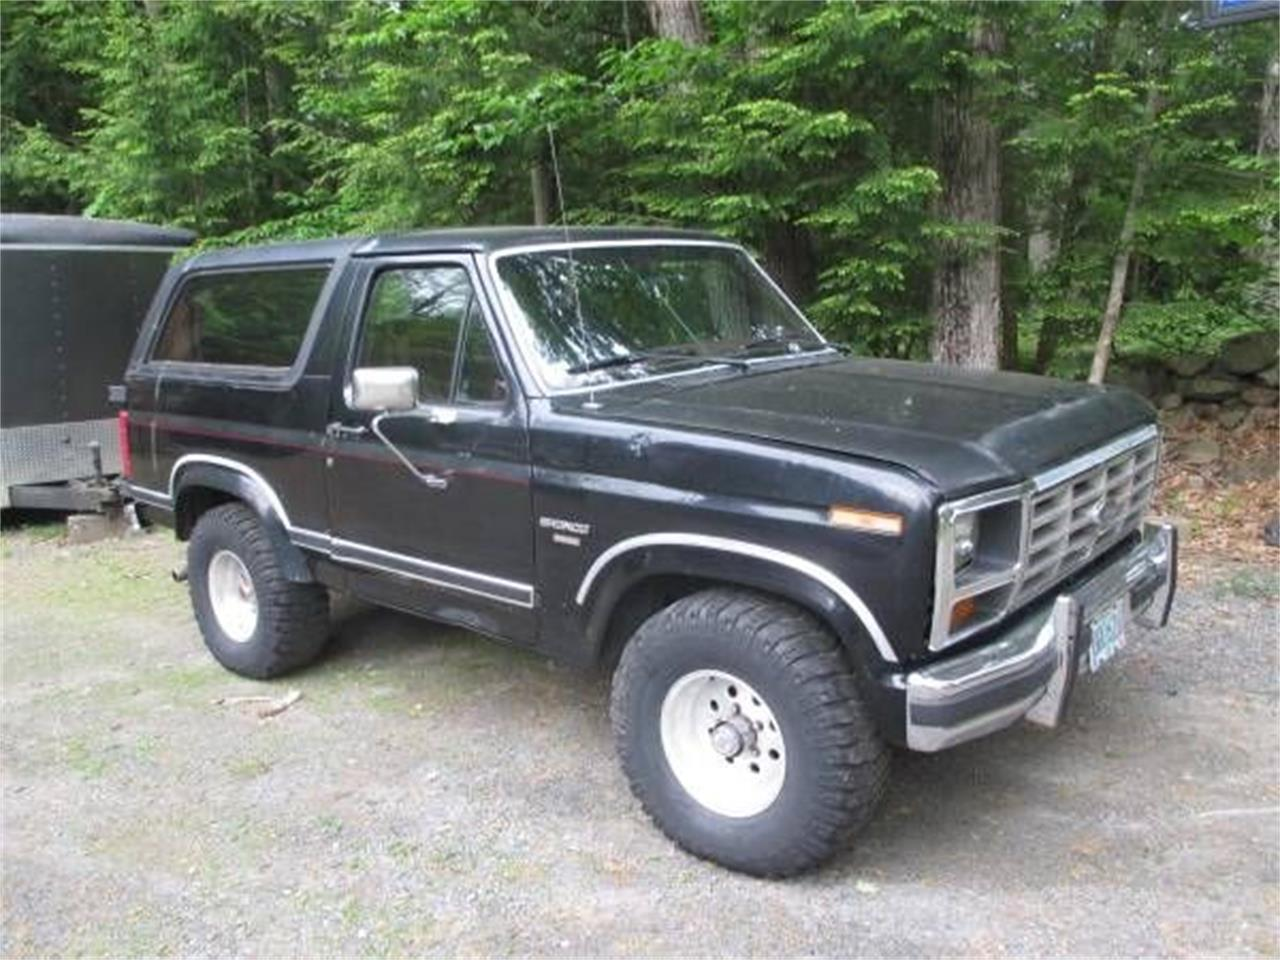 Large picture of 1986 bronco 7995 00 o5rl